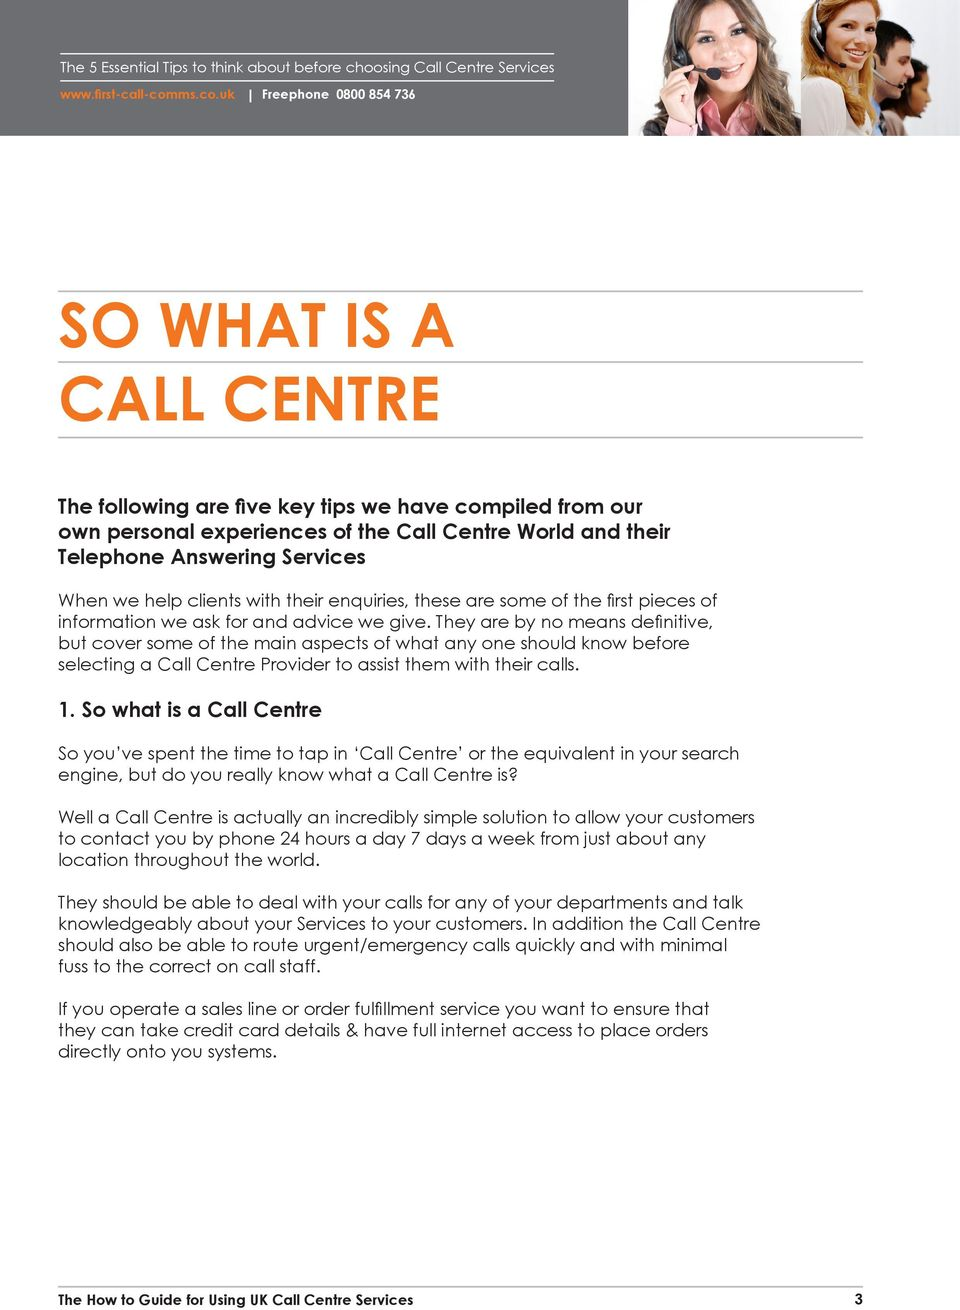 They are by no means definitive, but cover some of the main aspects of what any one should know before selecting a Call Centre Provider to assist them with their calls. 1.